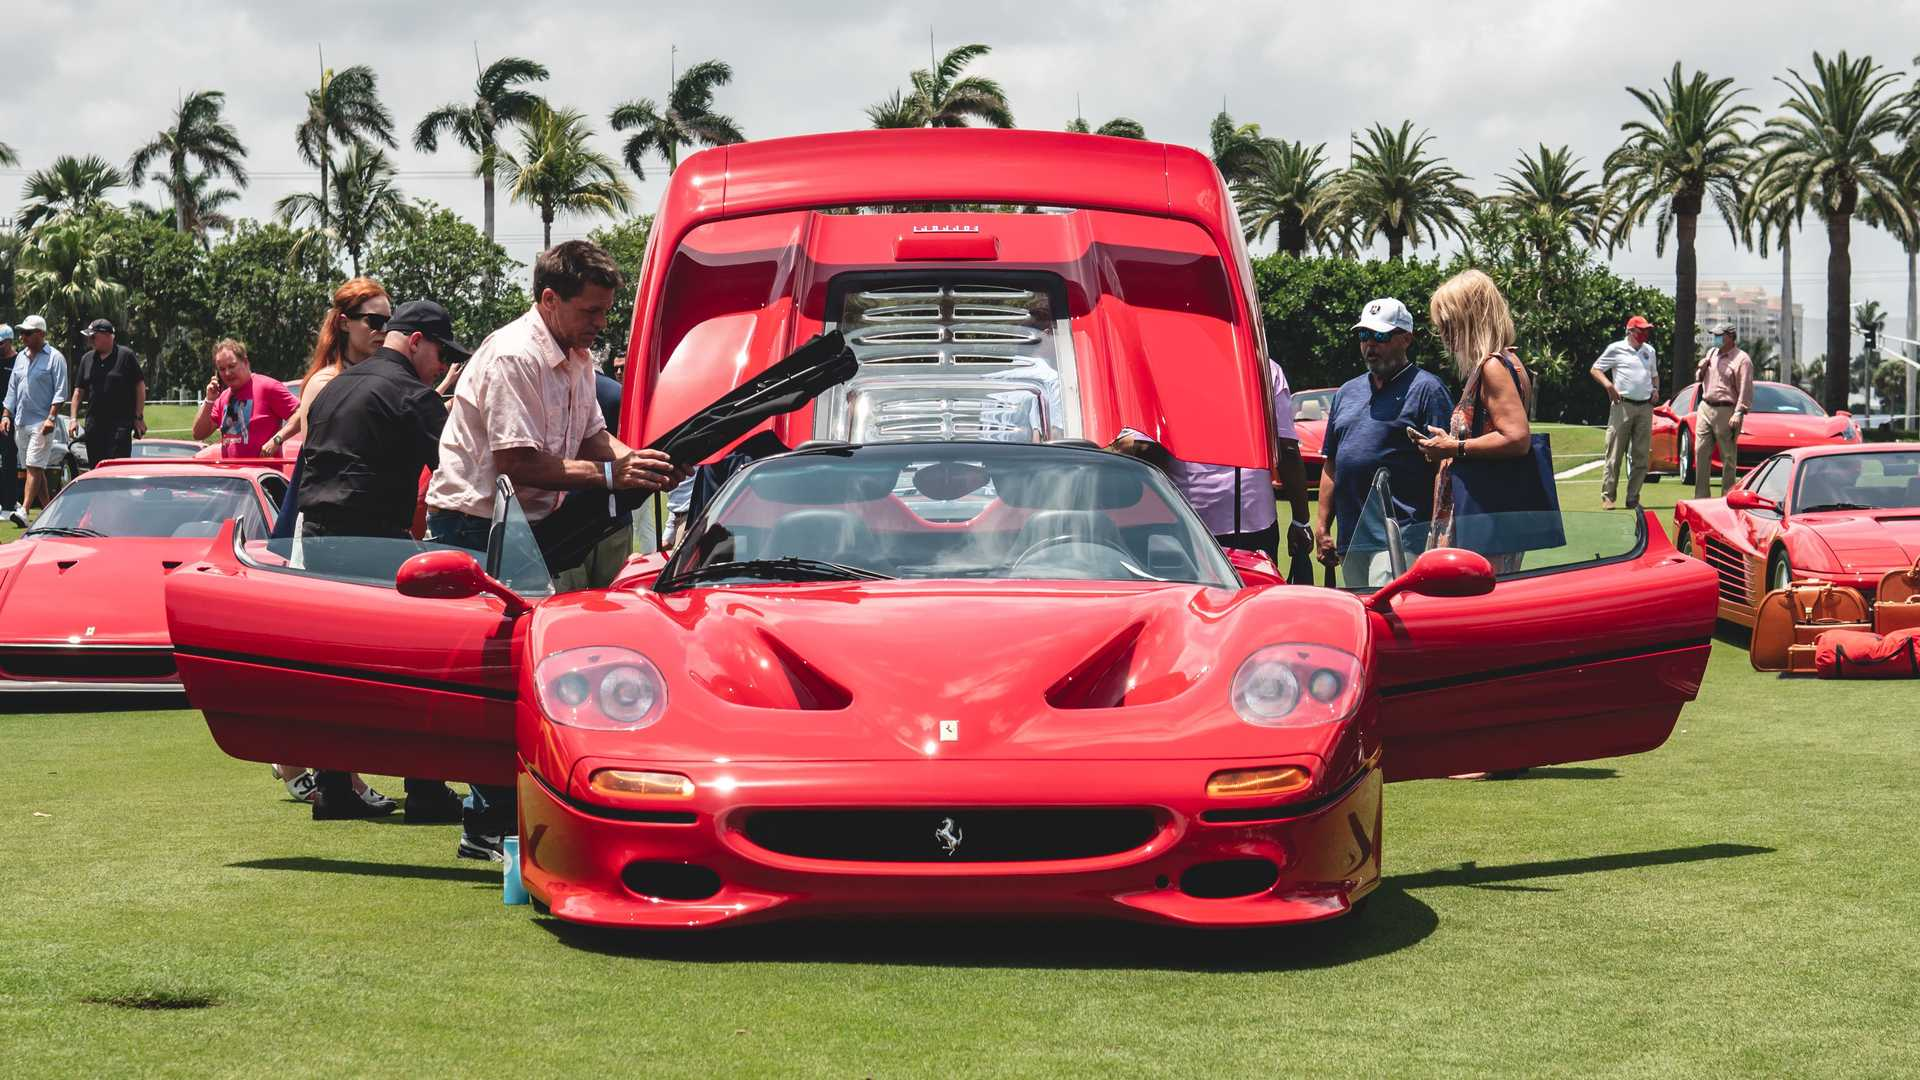 The 30th annual meeting of Ferrari owners known as the Cavallino Classic has taken place in Palm Beach, Florida, USA. Cavallino Magazine established the tradition in early 1990s.